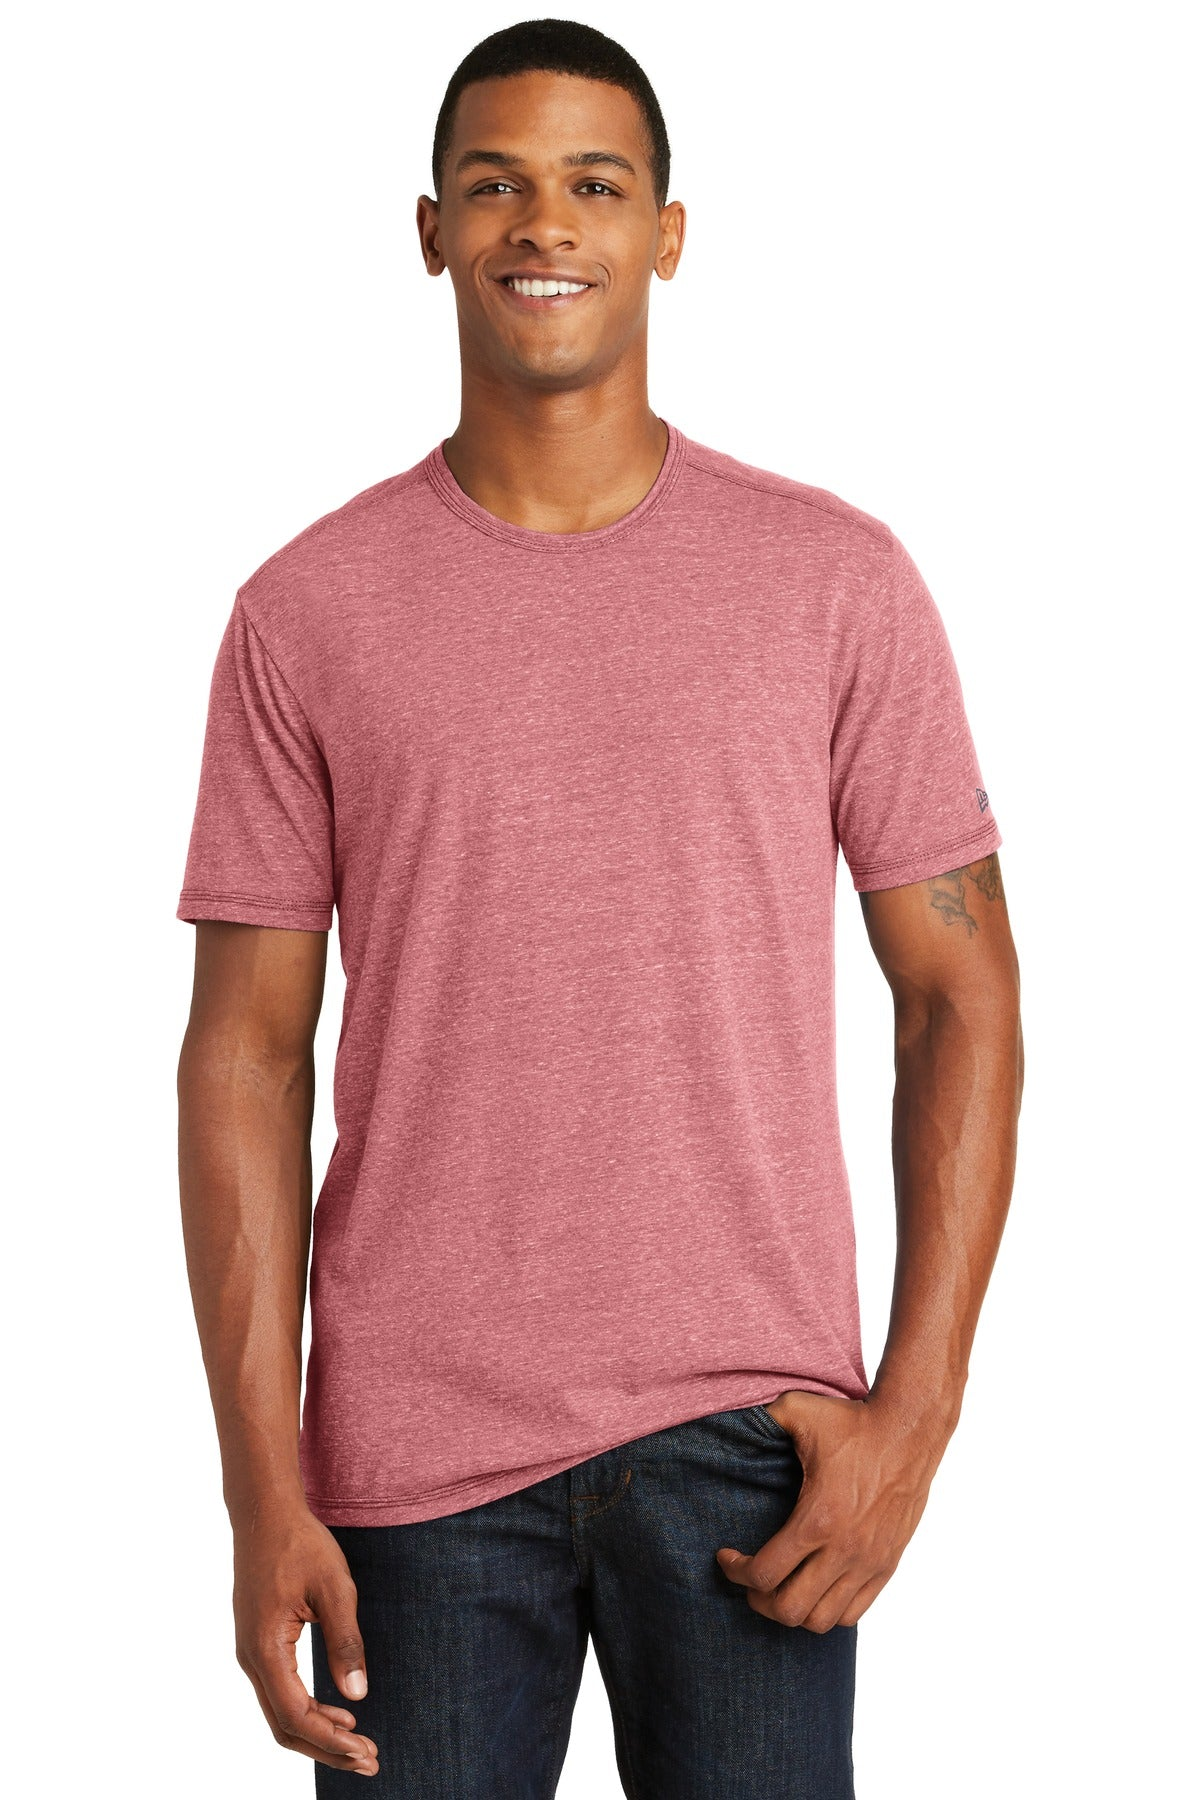 New Era NEA130 Tri-Blend Performance Crew Tee - Crimson - HIT A Double